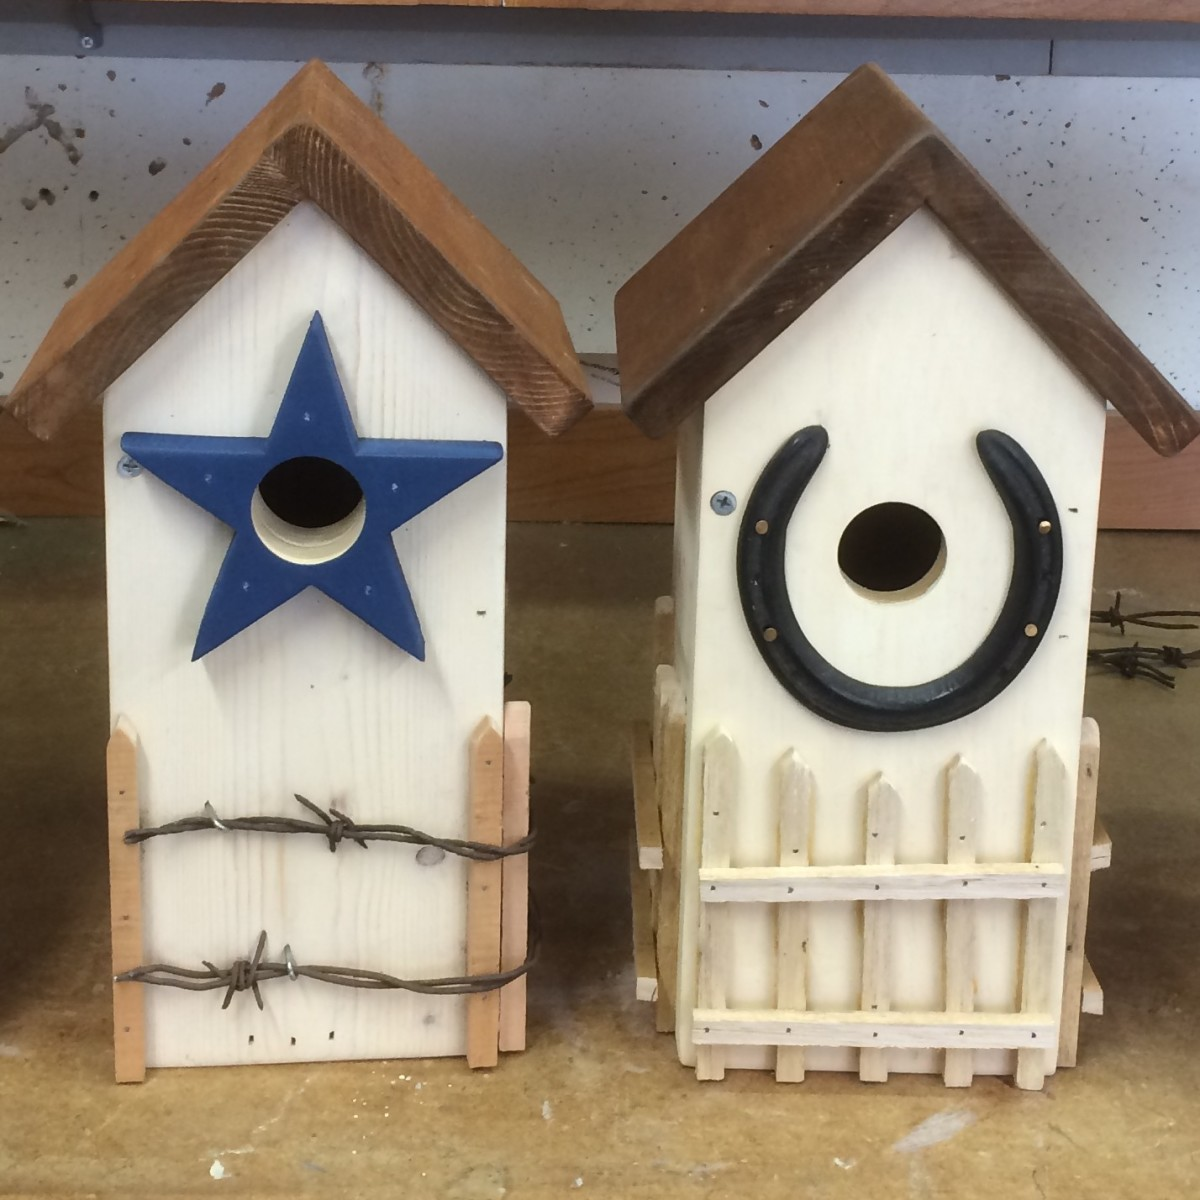 16 Ideas for Birdhouses, Feeders, and Nesting Box Plans and Designs